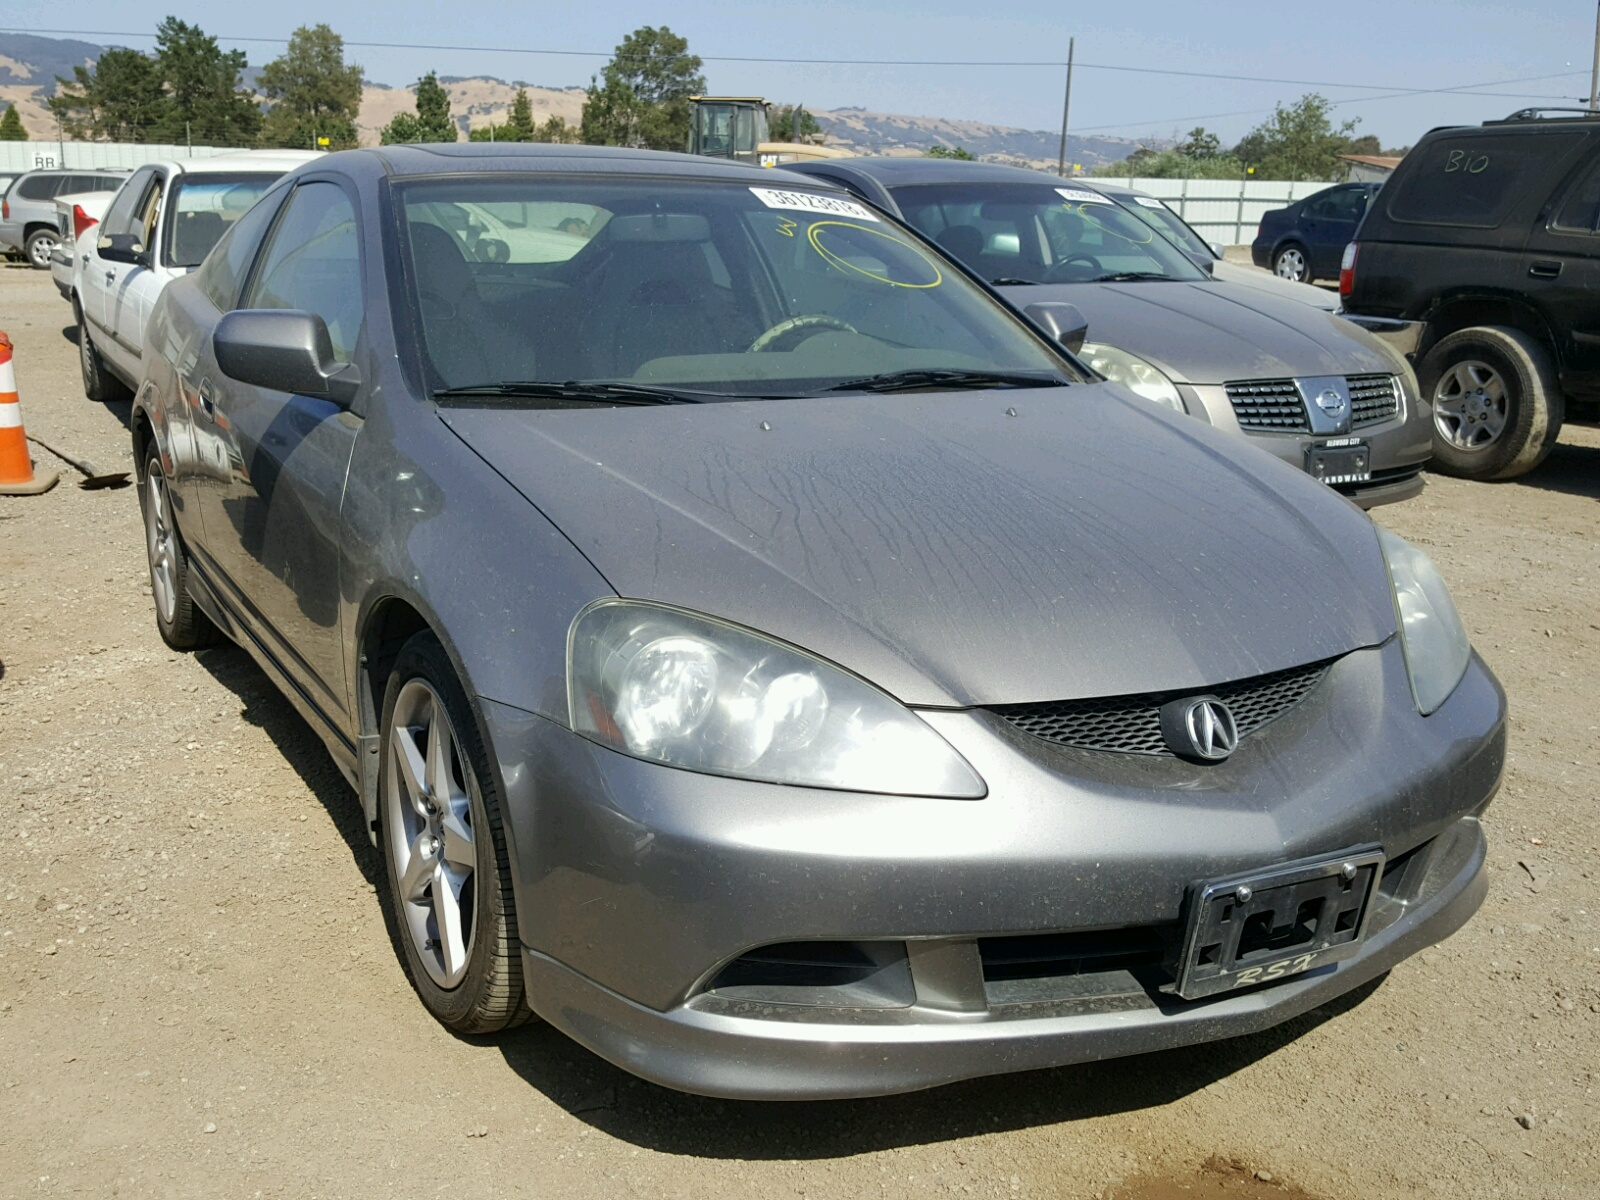 front type cu underrated sale of view the hd cl s acura for tl in a silver liter ride week